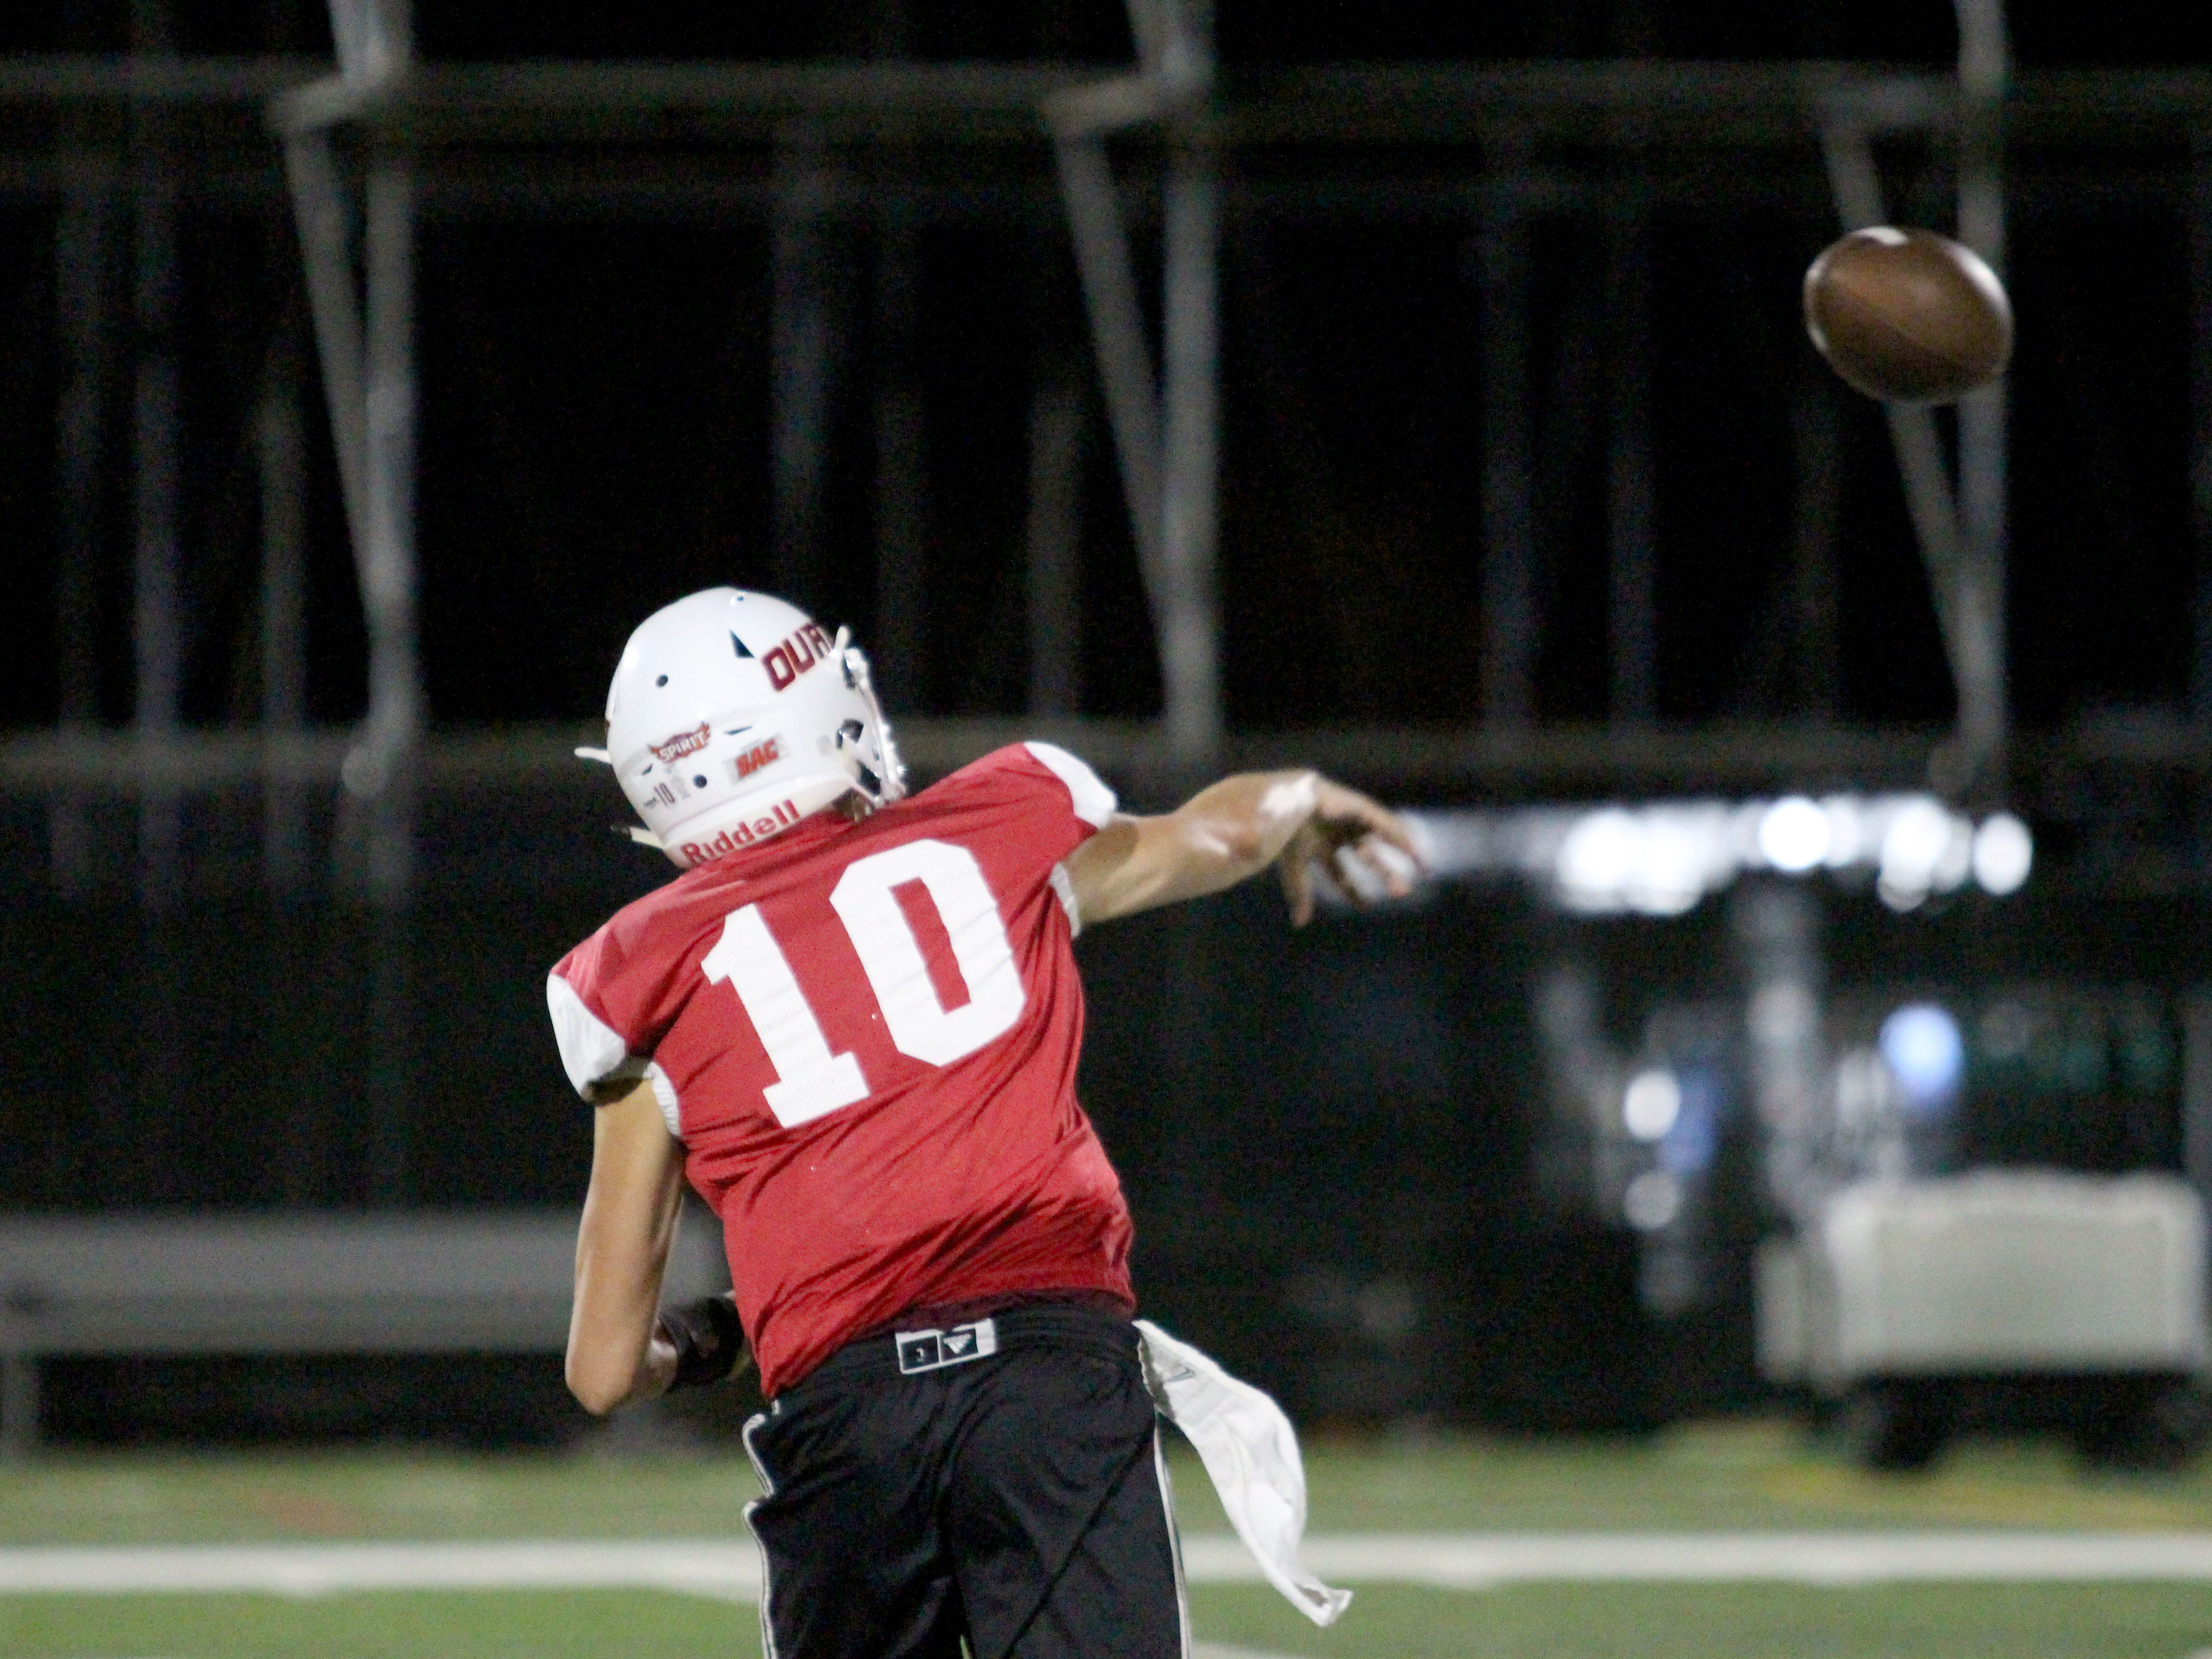 OUAZ's Austin McCullough throws a pass at practice on Tuesday night in Surprise on Sept. 11, 2018.